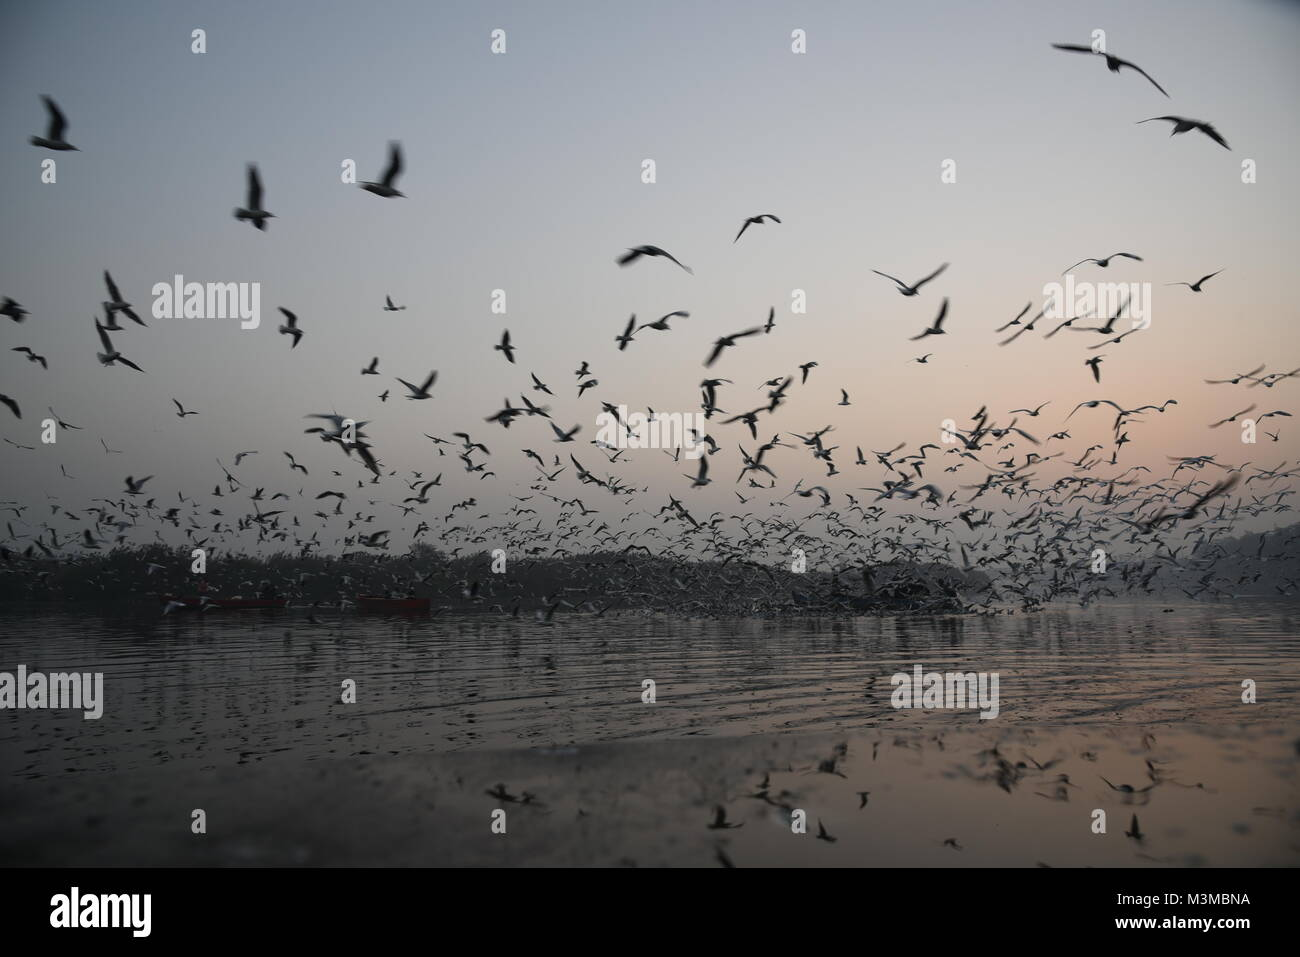 Migratory hundreds of Siberian Seagull birds are flying in the morning with sunrise at Yamuna Bank river, Delhi, - Stock Image